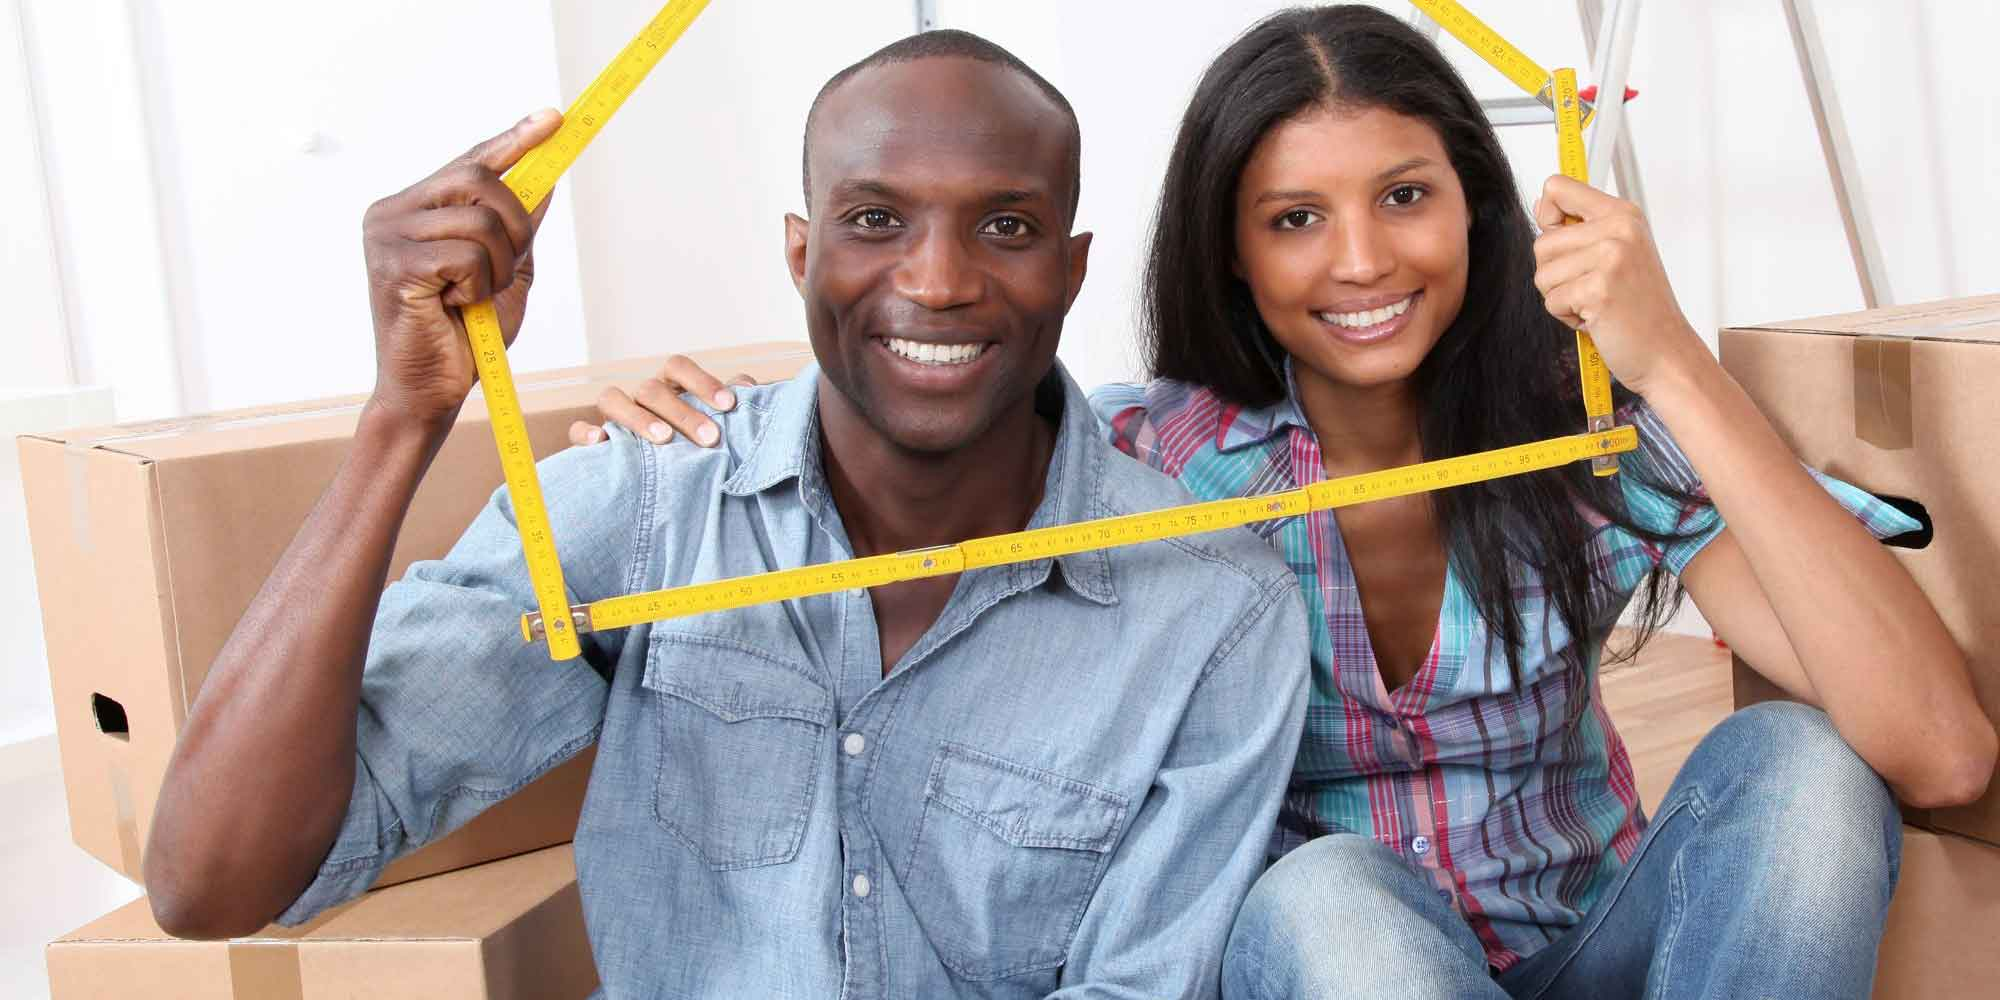 Compare Prices for Cheap Conveyancing Solicitors Quotes Online